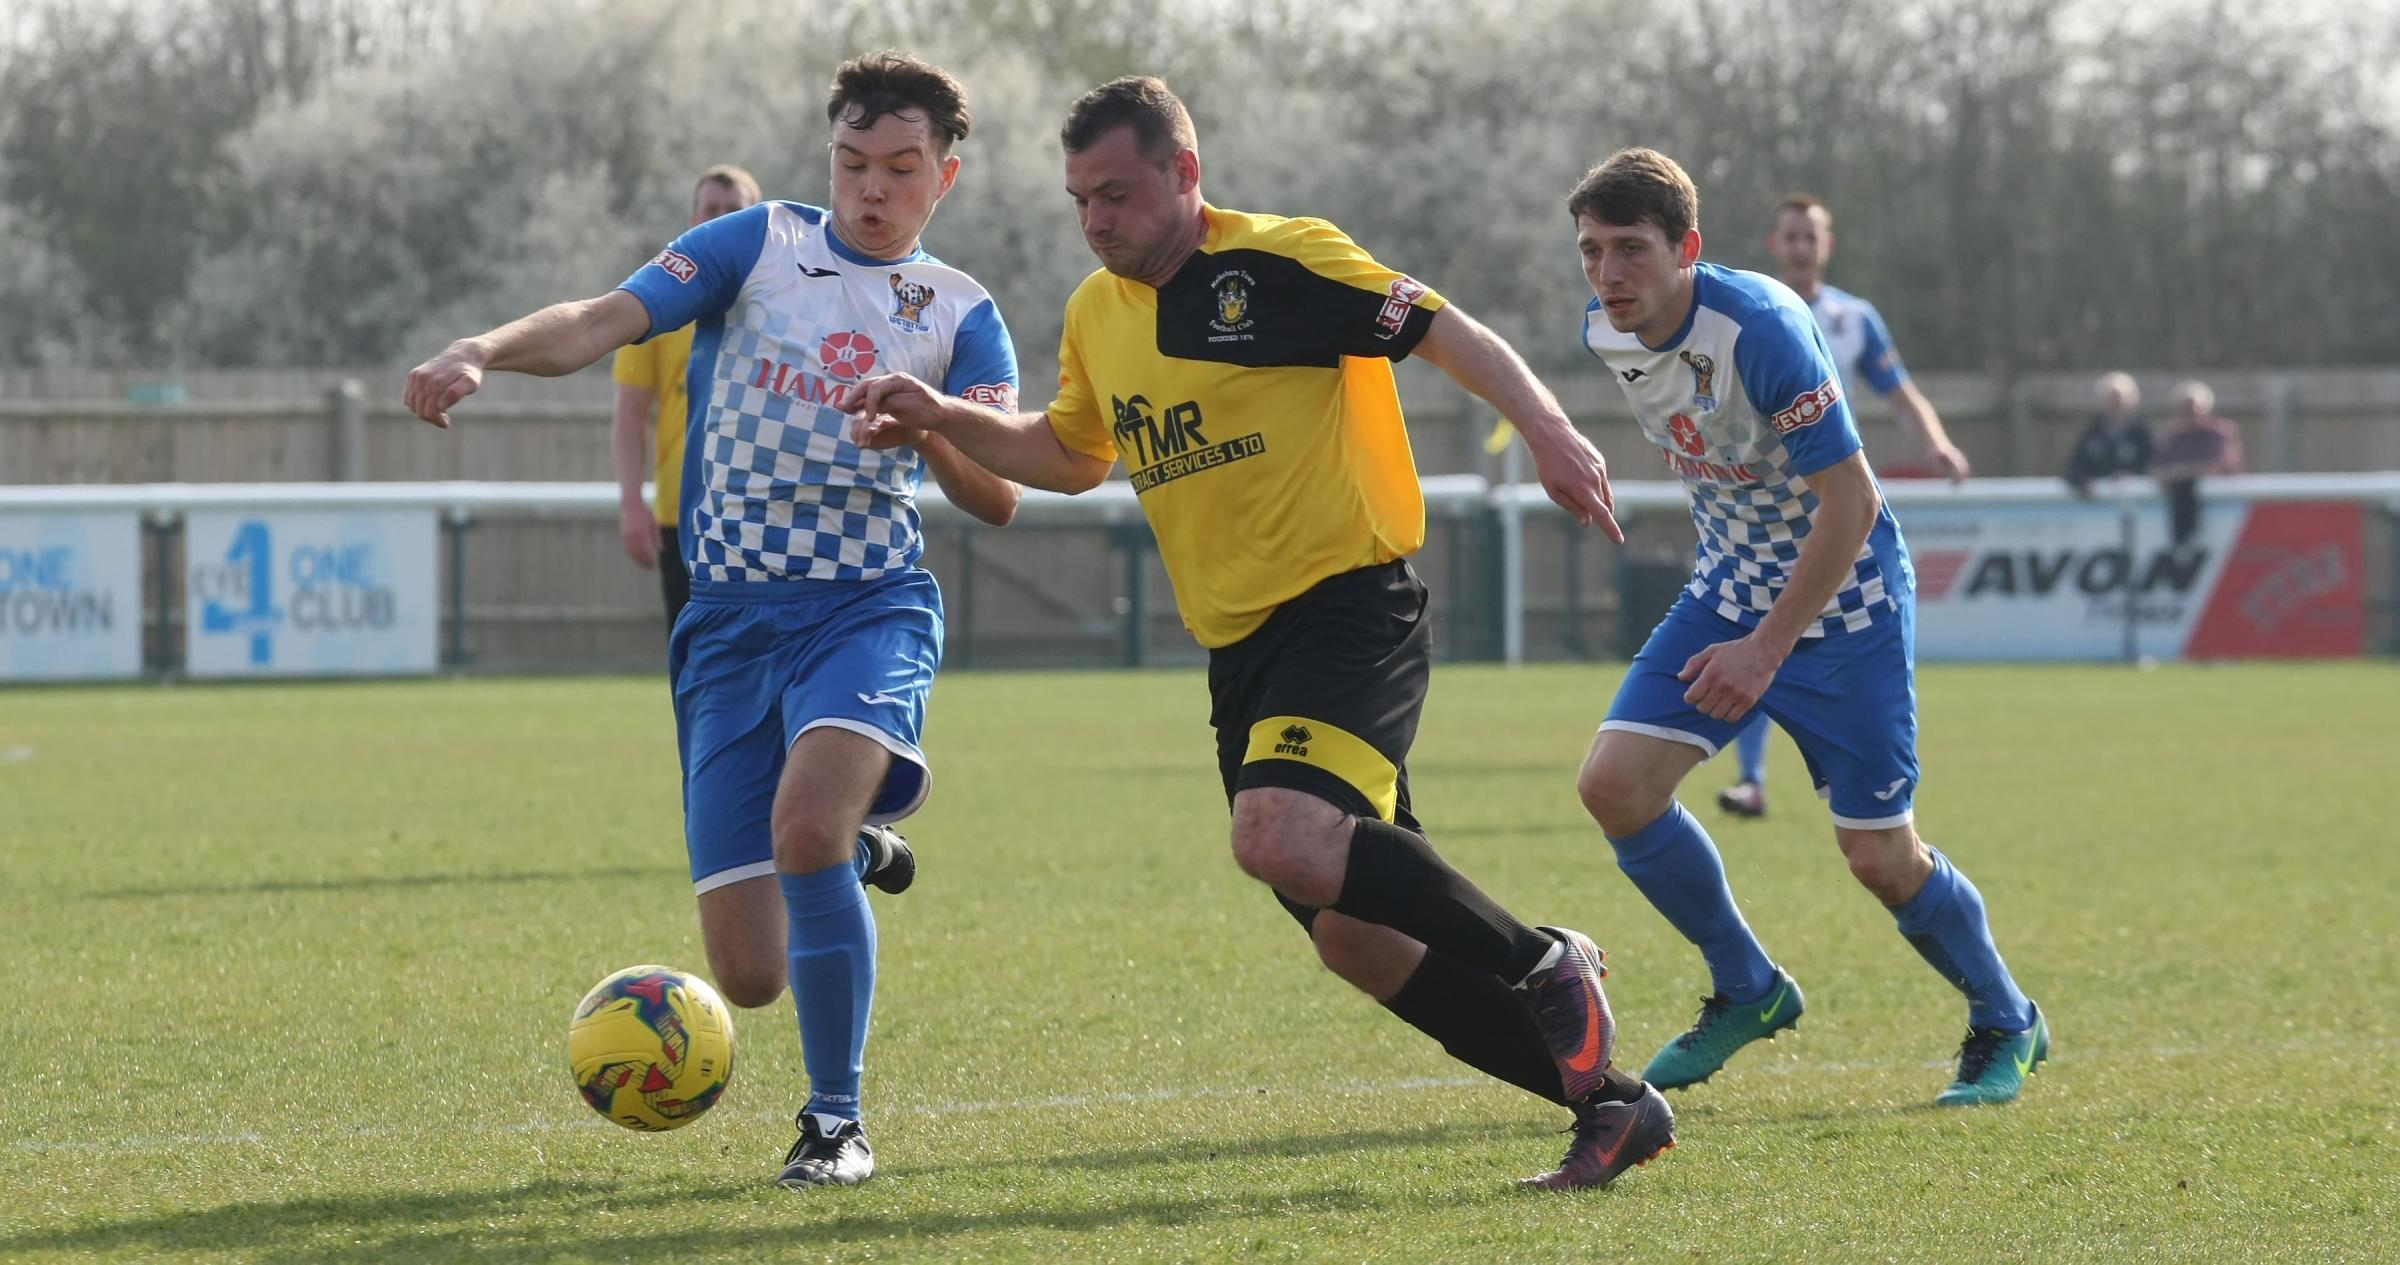 Caretaker manager Luke Ballinger scored for Melksham Town (yellow) in their defeat at Street	   PICTURE: ROBIN FOSTER